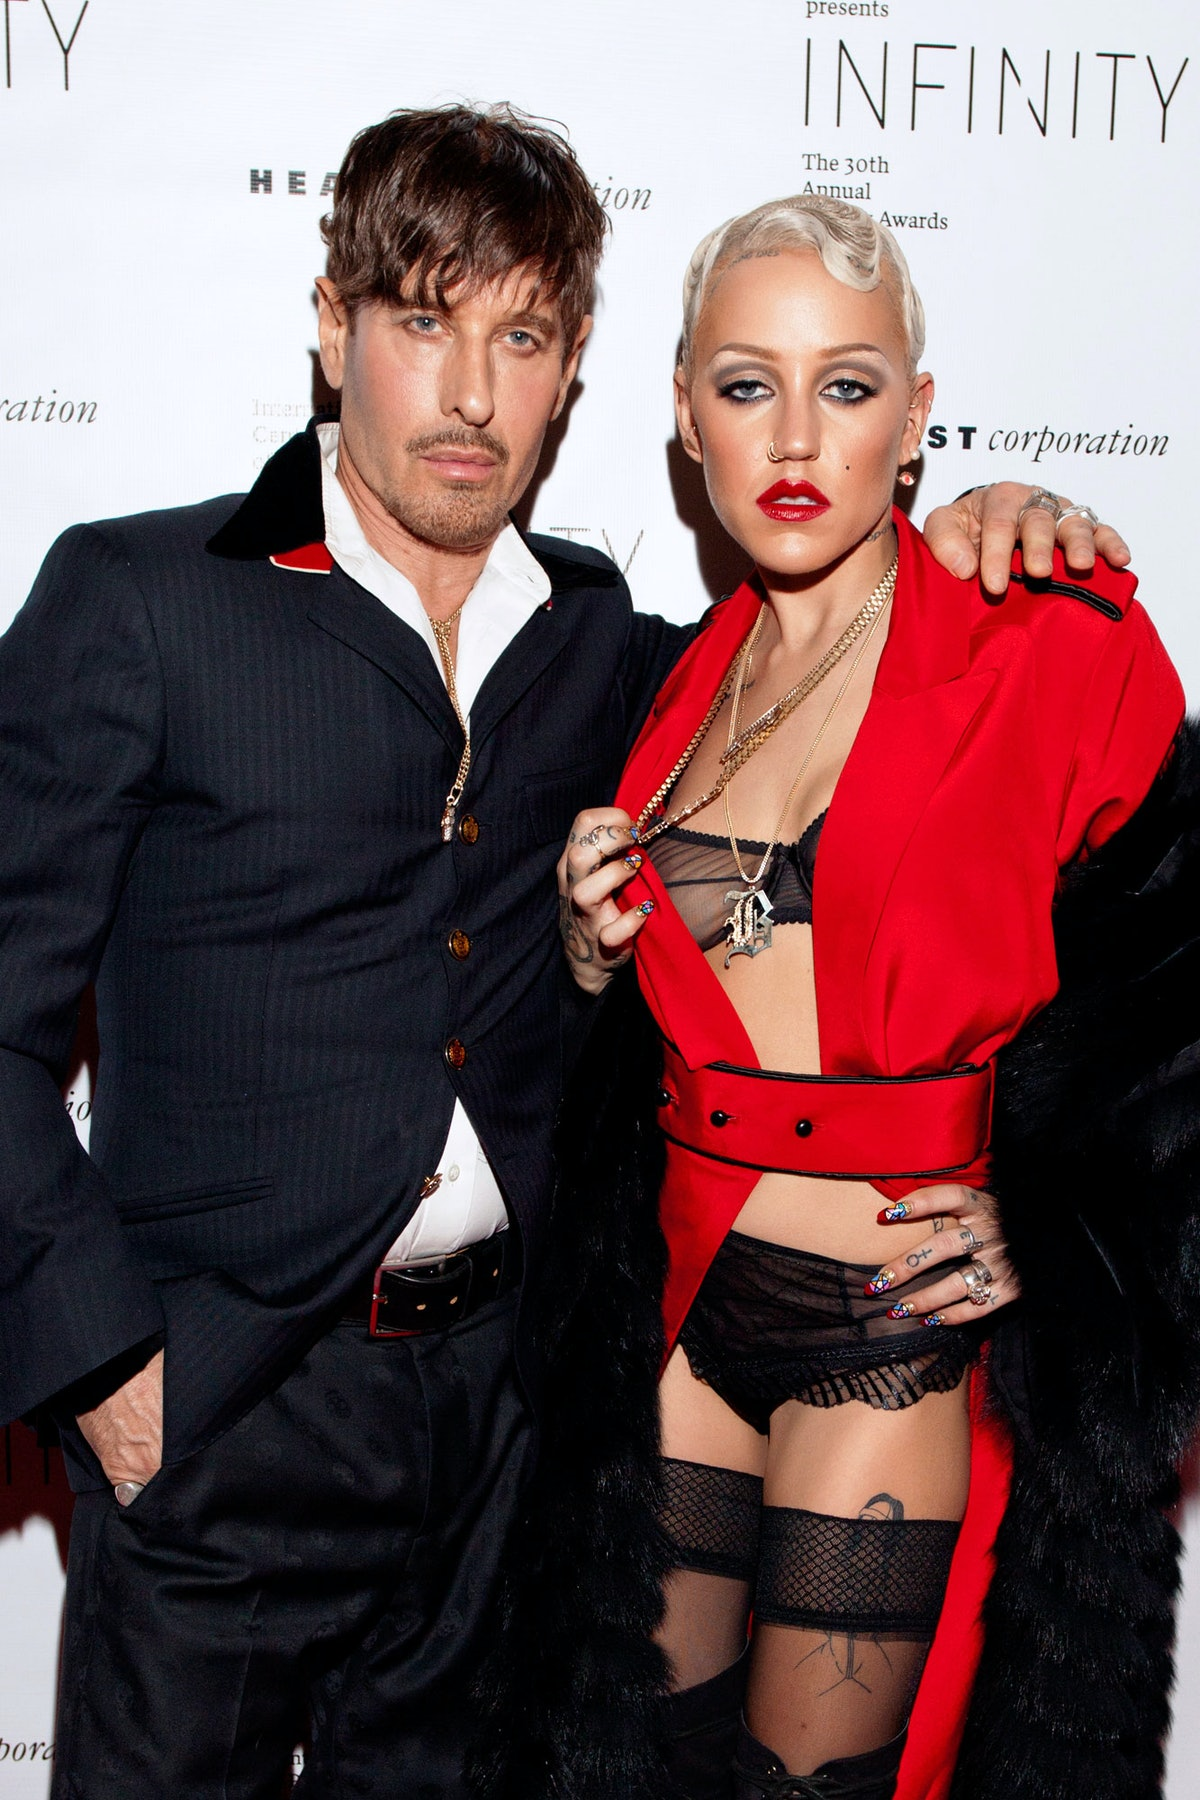 Steven Klein and Brooke Candy